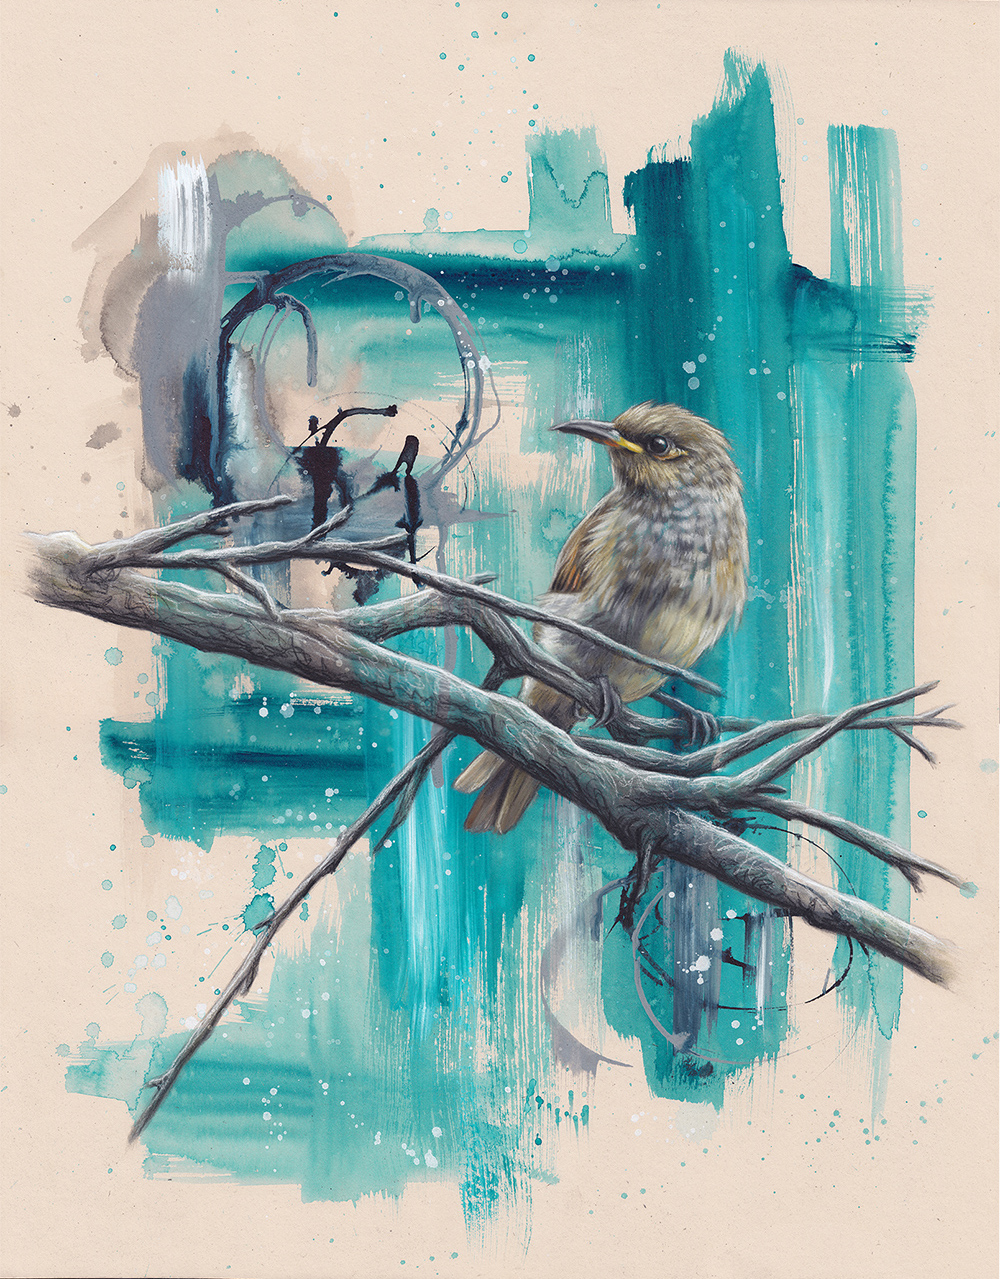 Brown Honeyeater on Turquoise